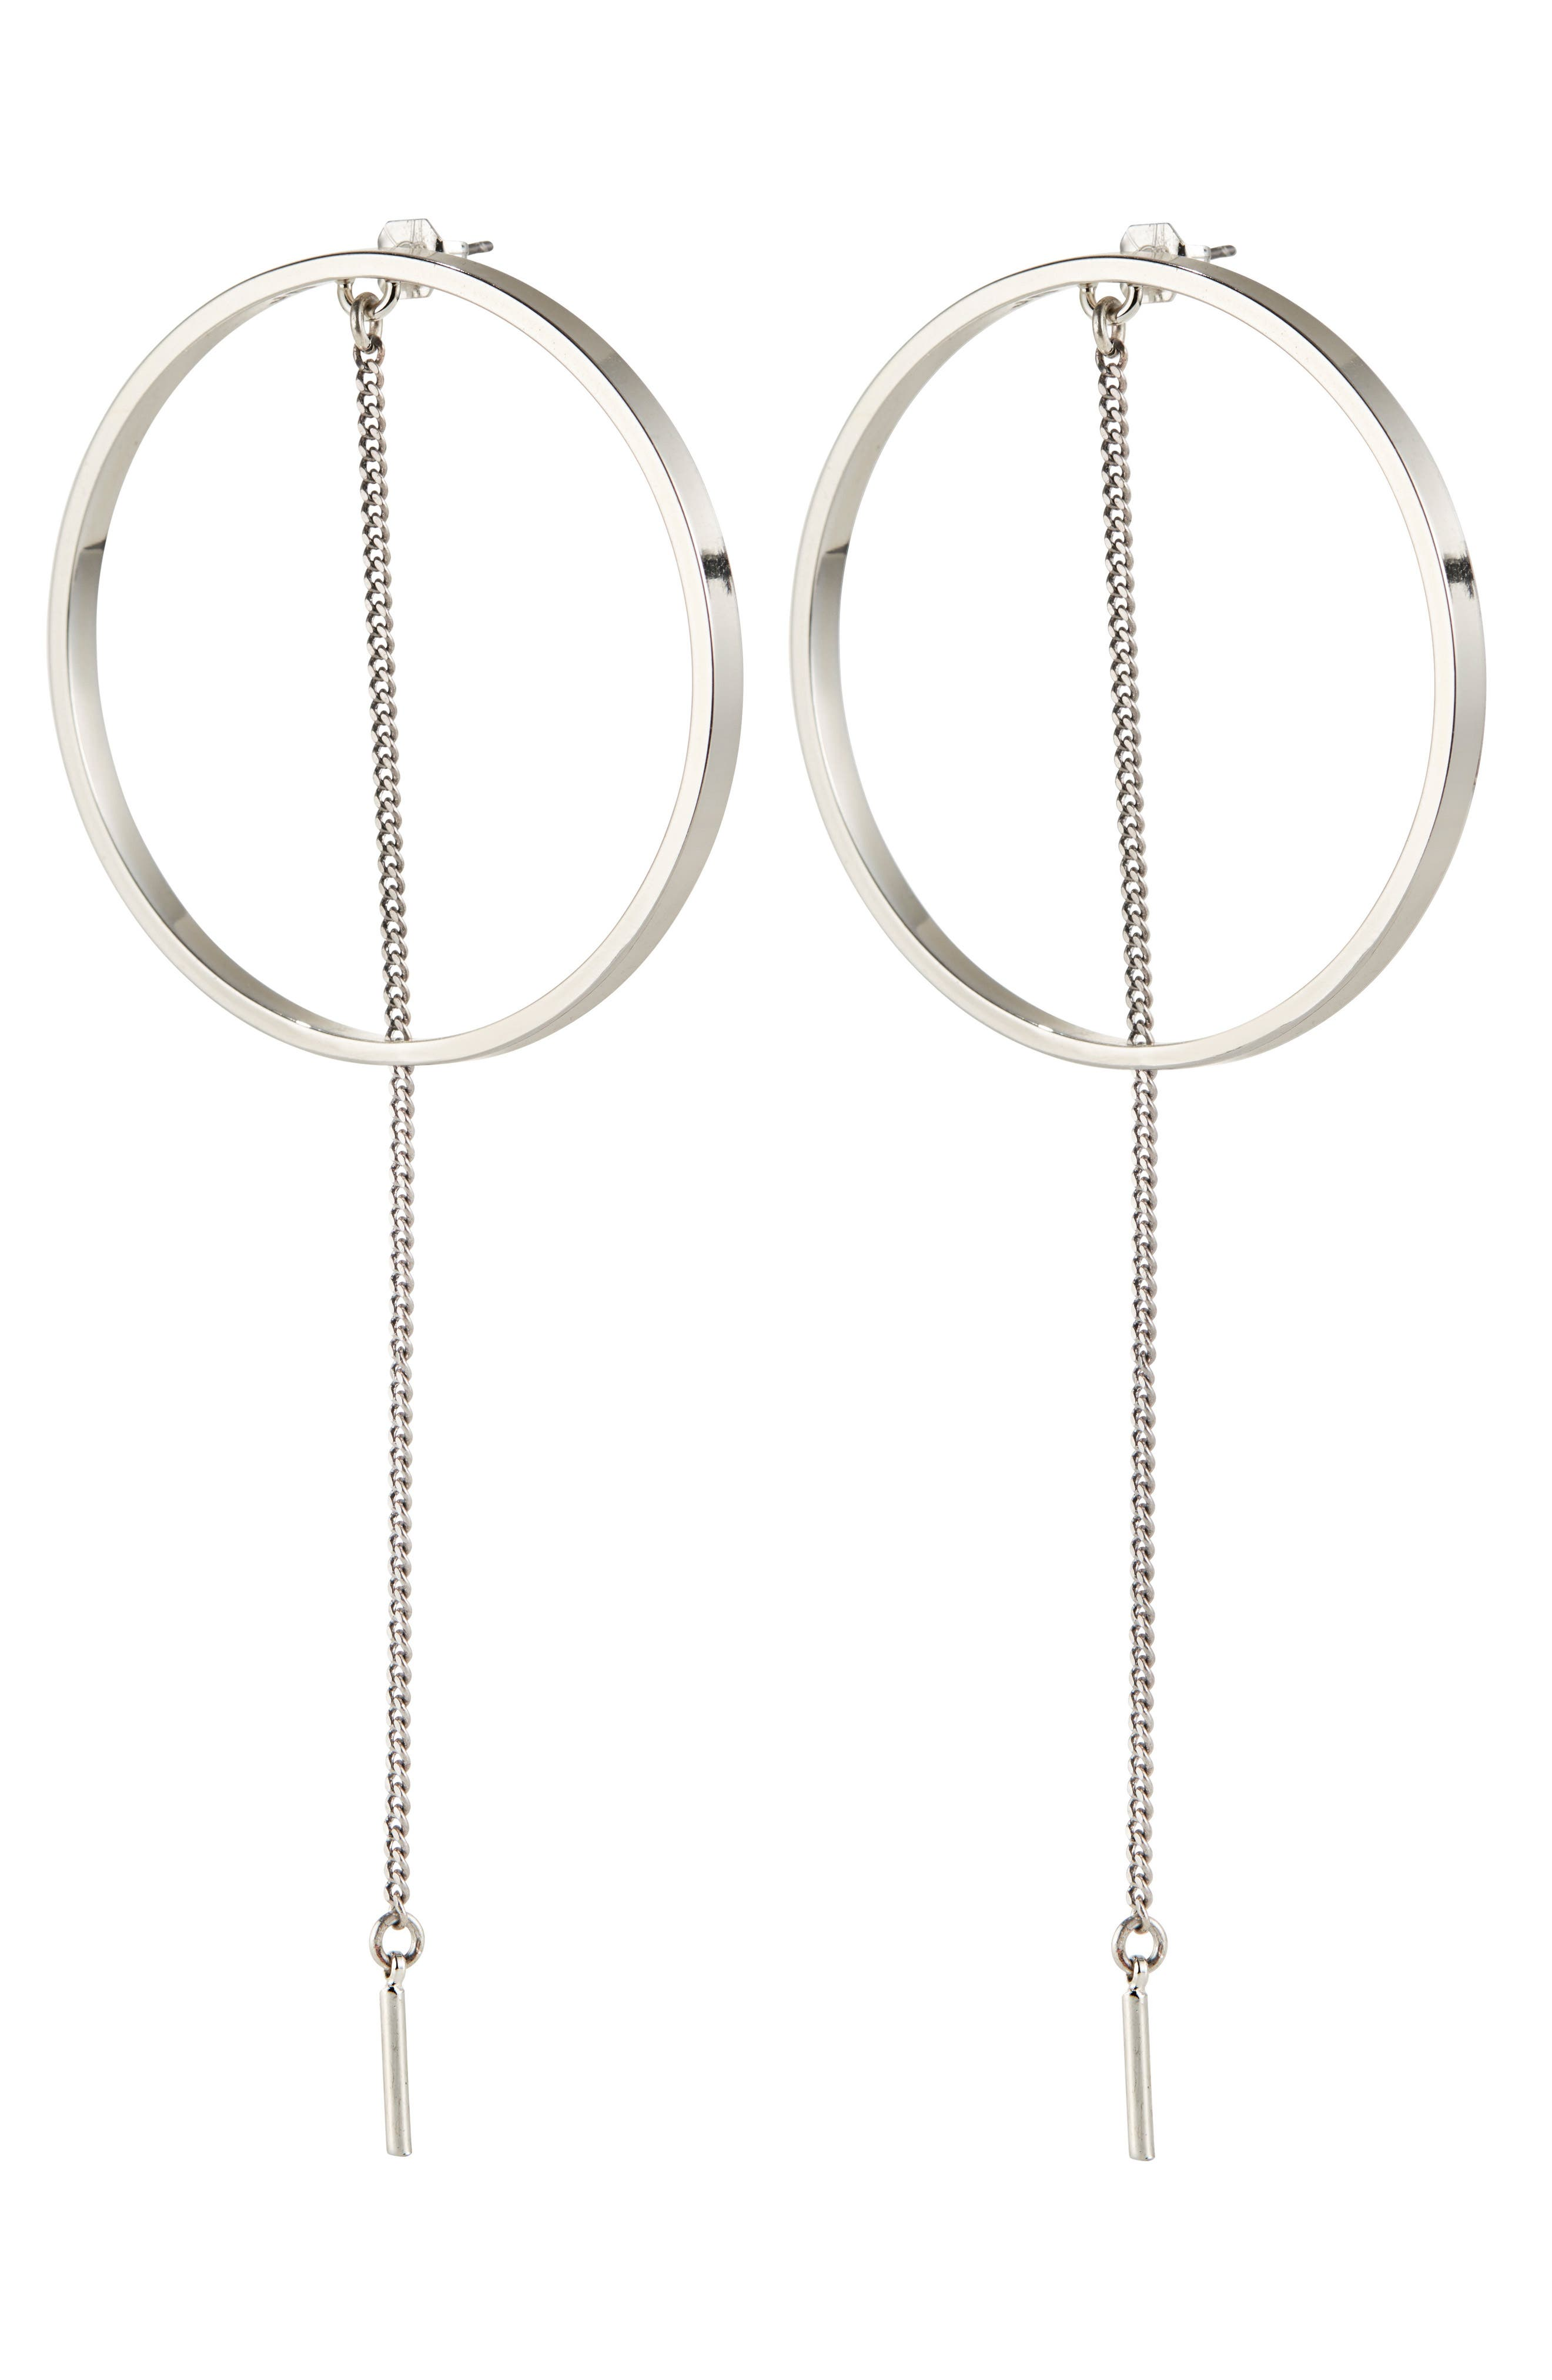 Main Image - Jenny Bird Rhine Frontal Hoop Earrings